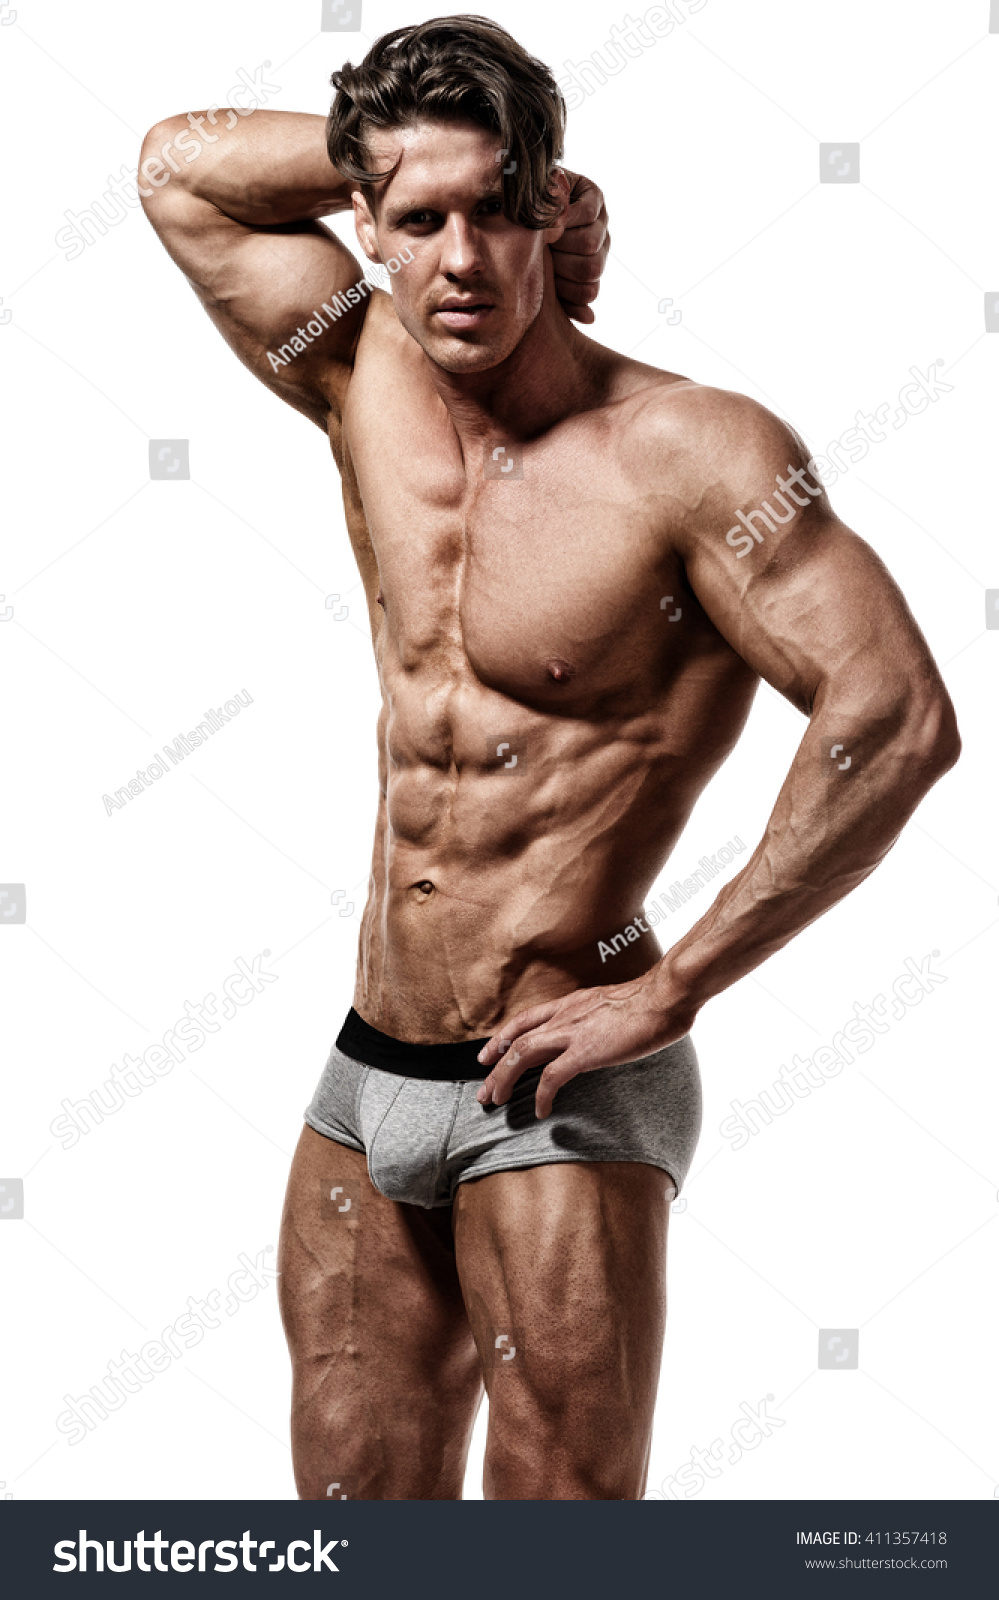 Shirtless Bodybuilder Showing His Muscular Arms Isolated On White